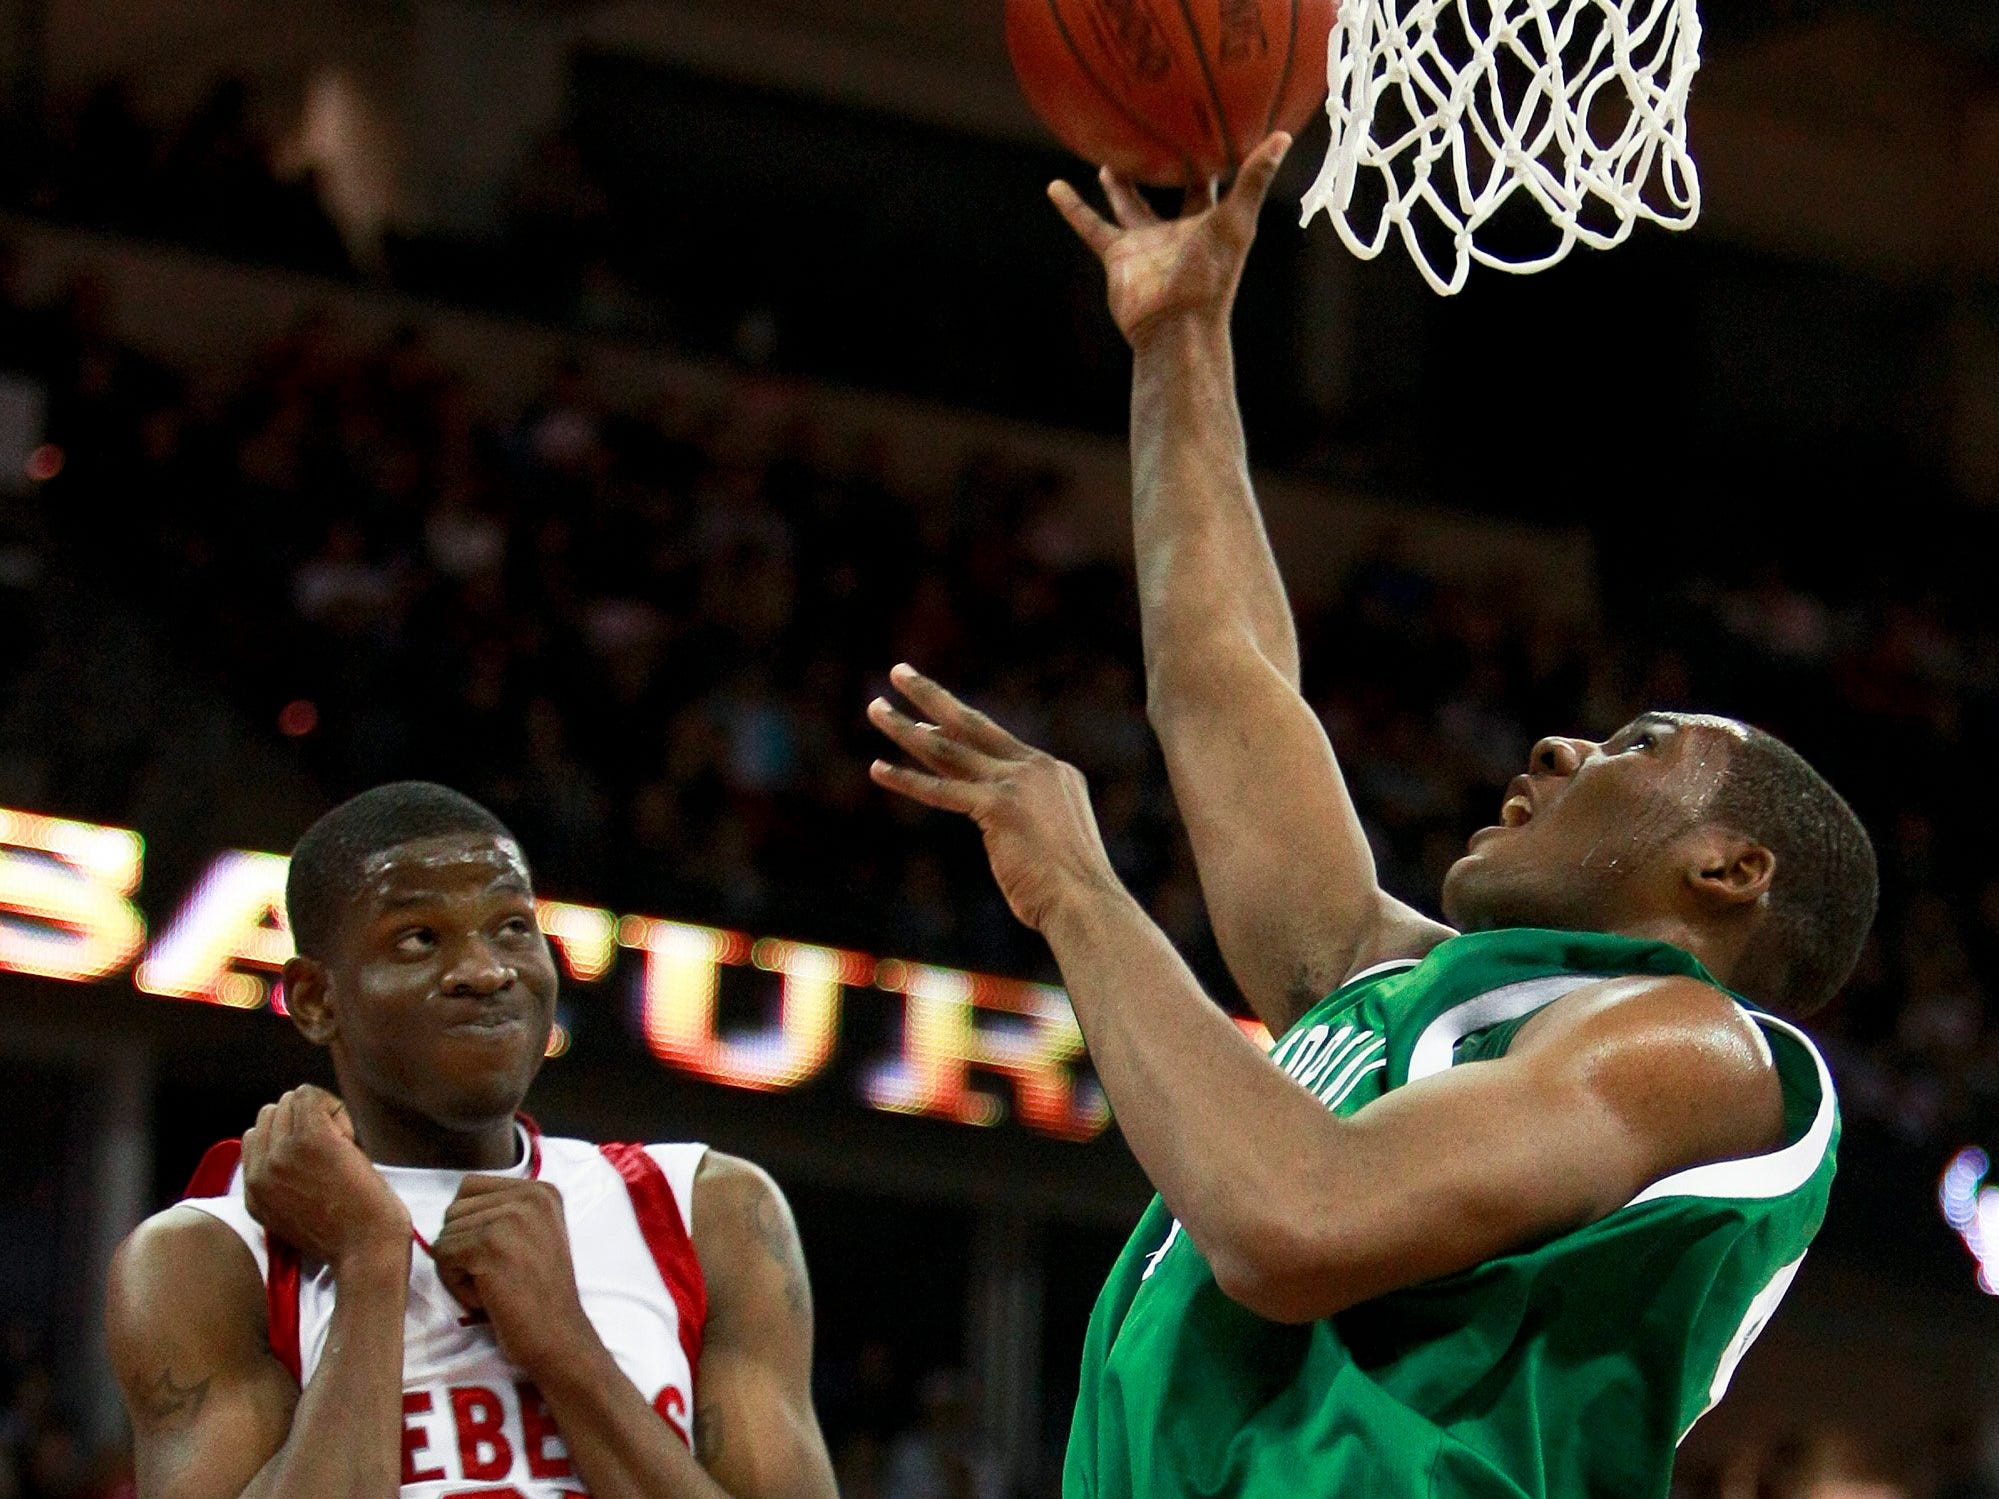 Racine Horlick's Jamil Wilson reacts after fouling Madison Memorial's Jeronne Maymon during the first half of the Division 1 championship basketball game at the WIAA state tournament Saturday, March 21, 2009, in Madison, Wis.